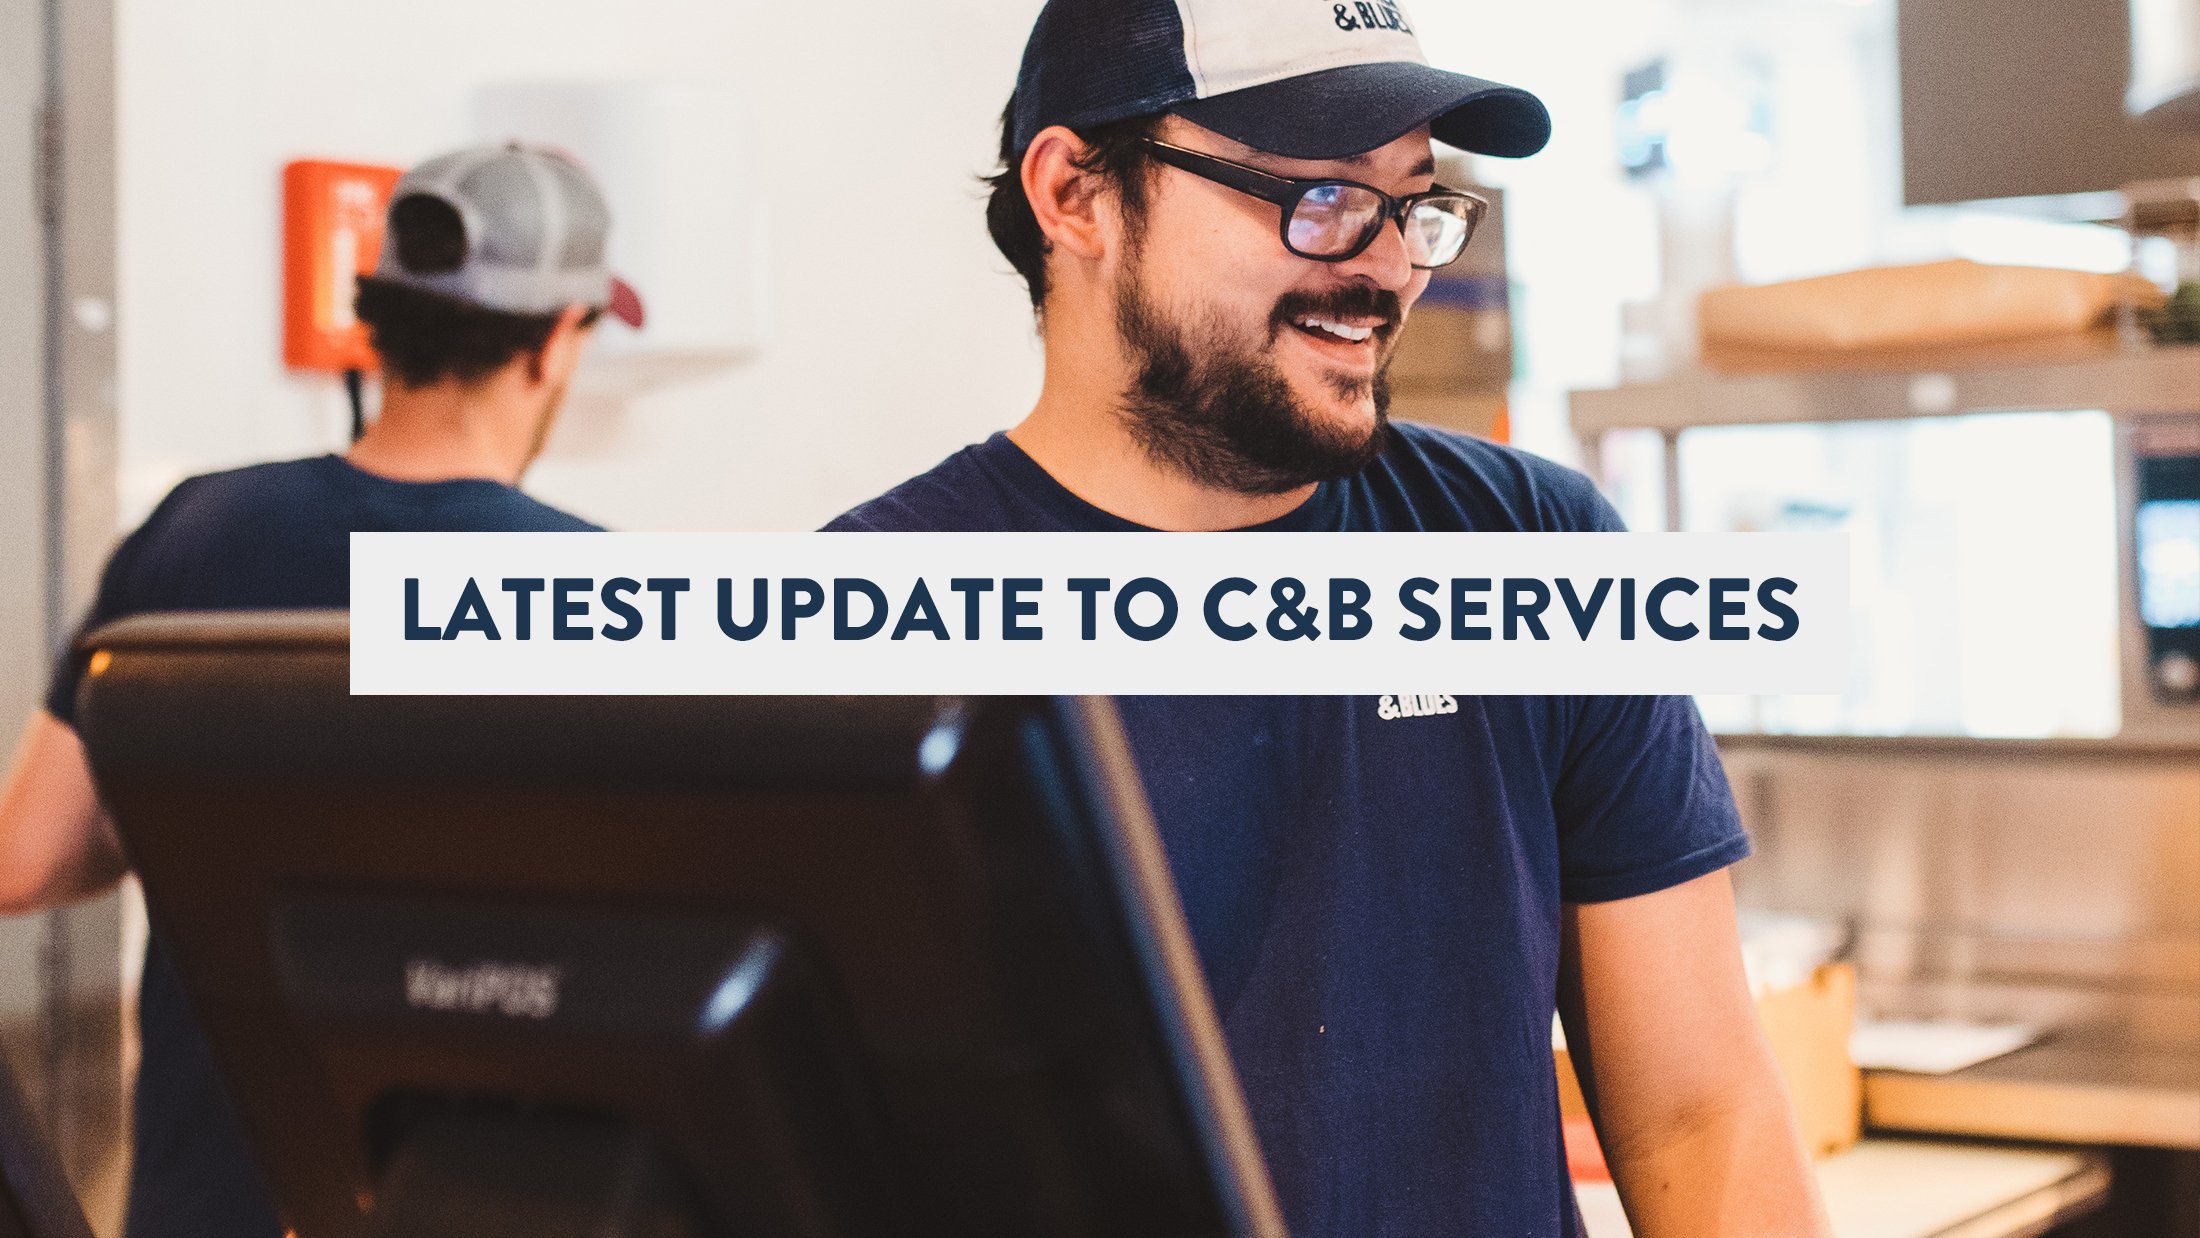 Latest update to C&B services – December 31st 2020